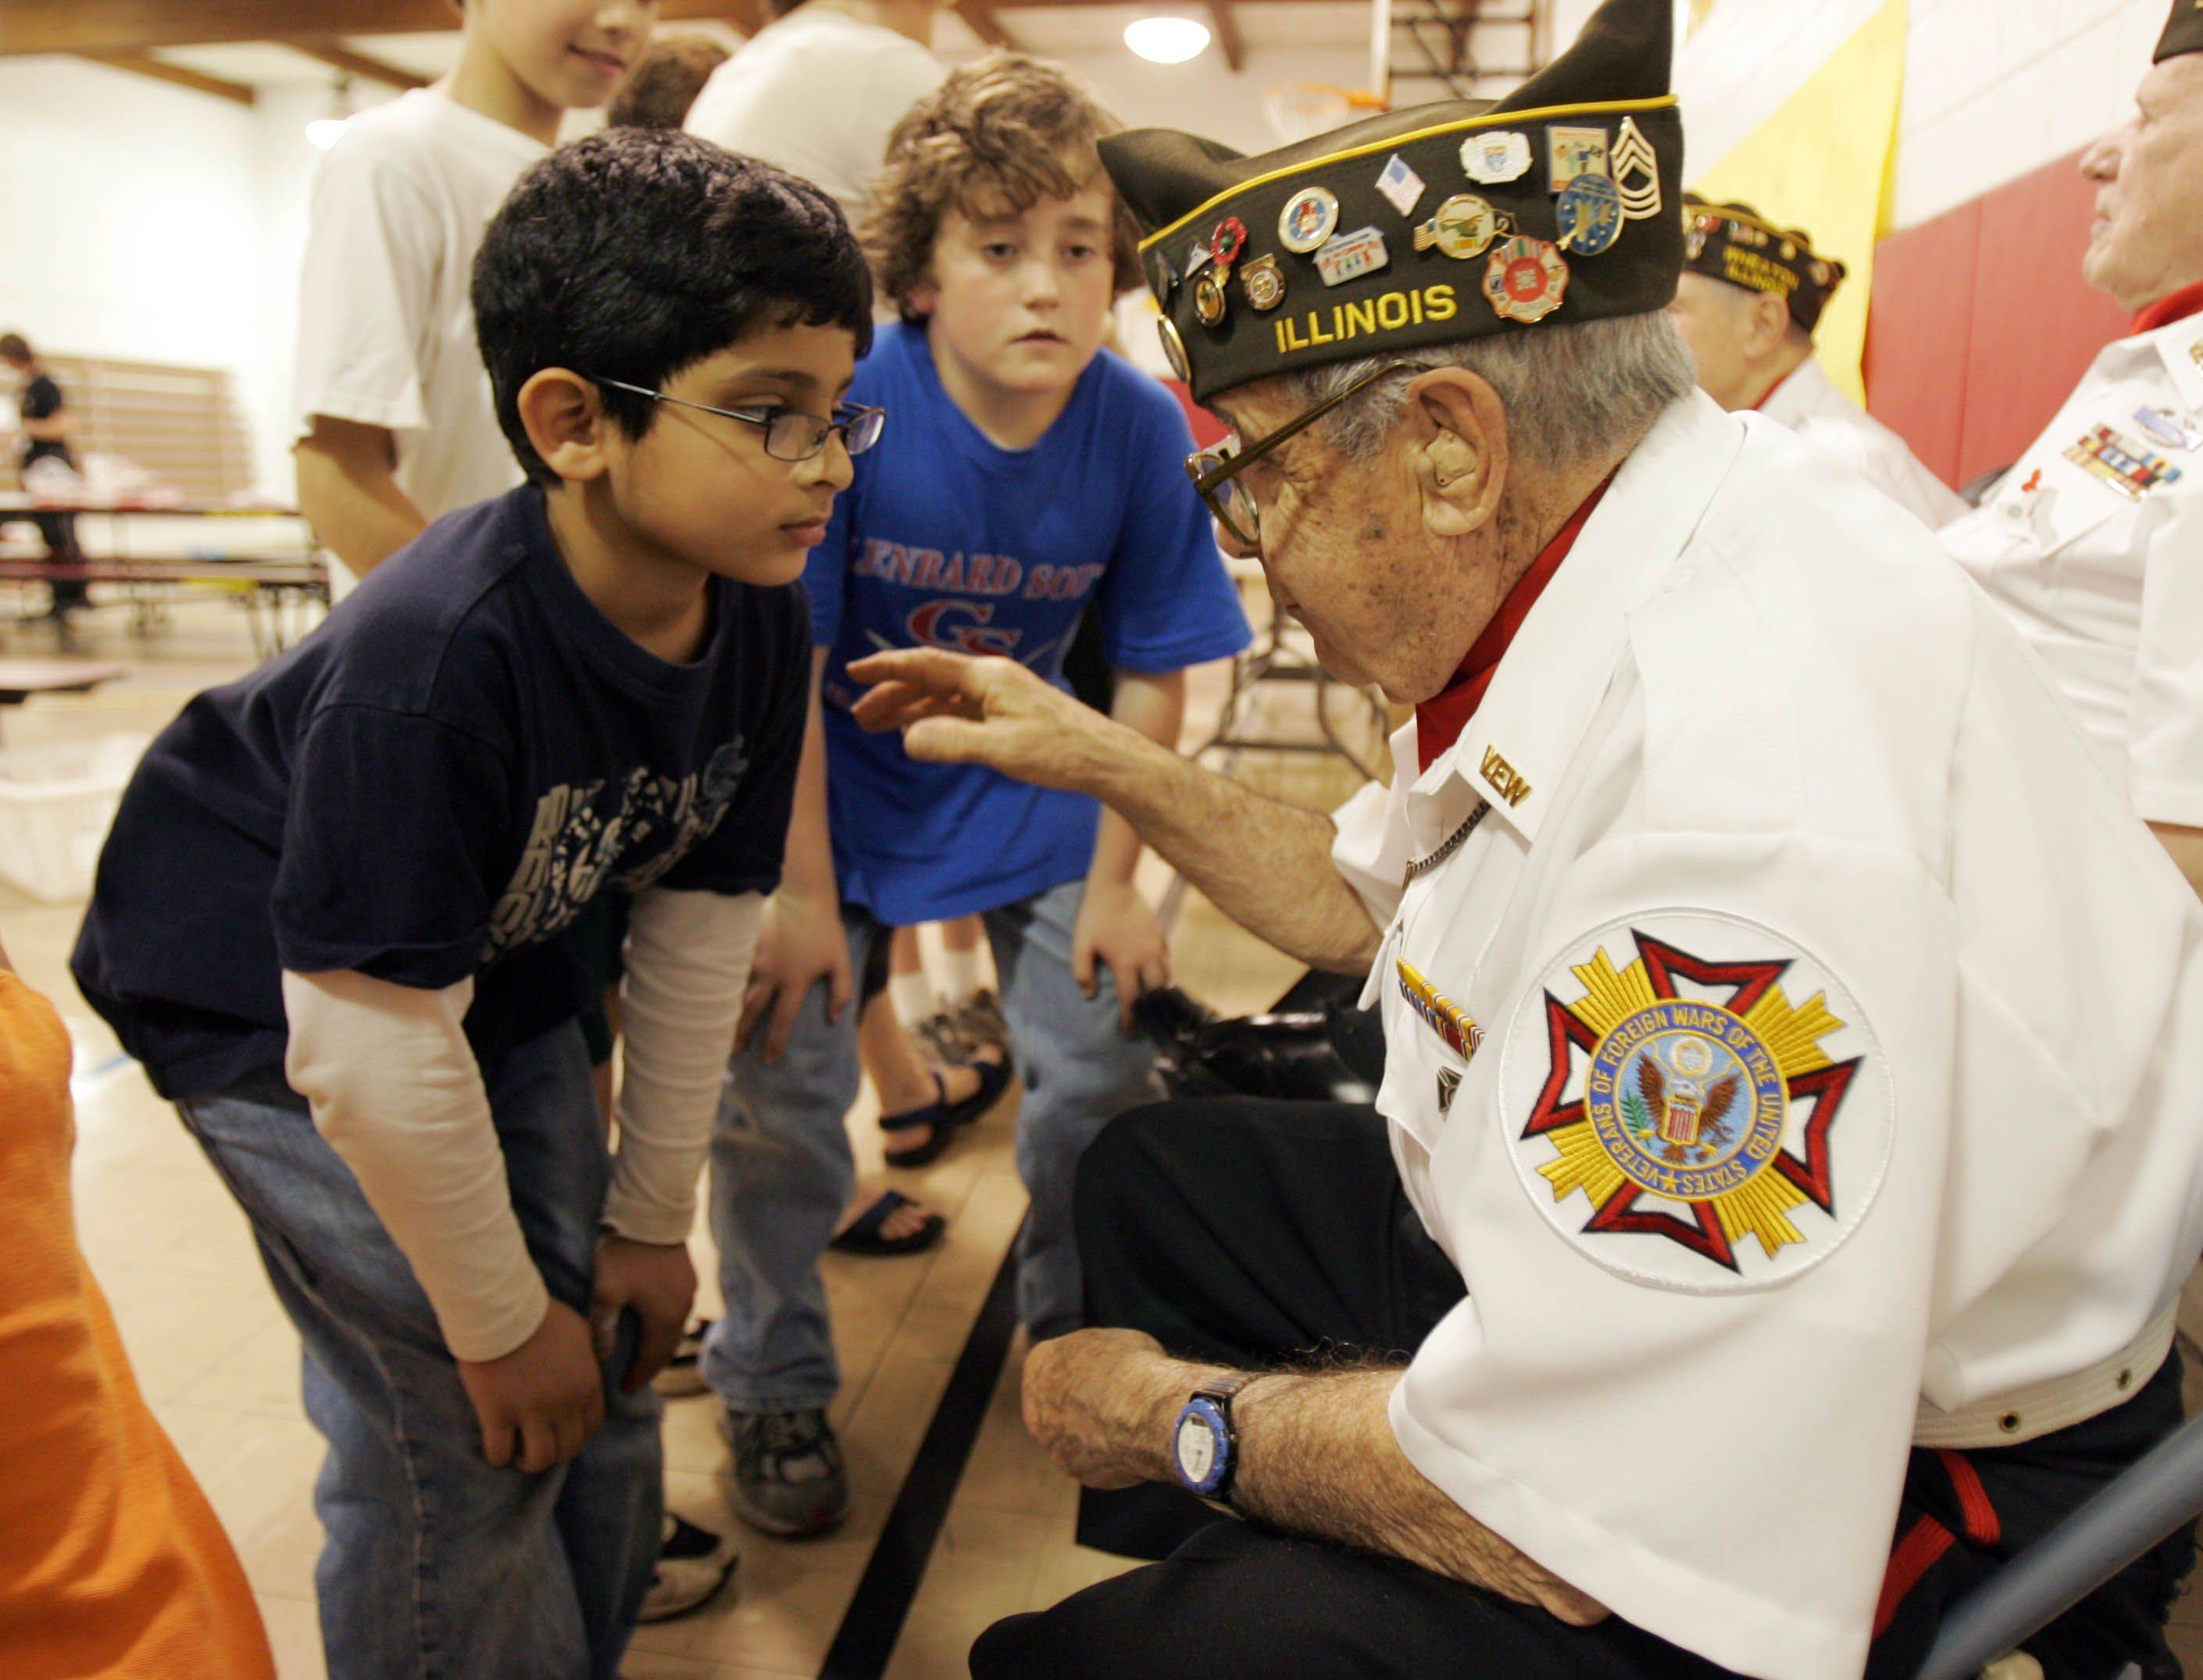 World War II veteran Louis Licastro loves to tell stories, whether to schoolchildren or to folks at the Wheaton VFW.